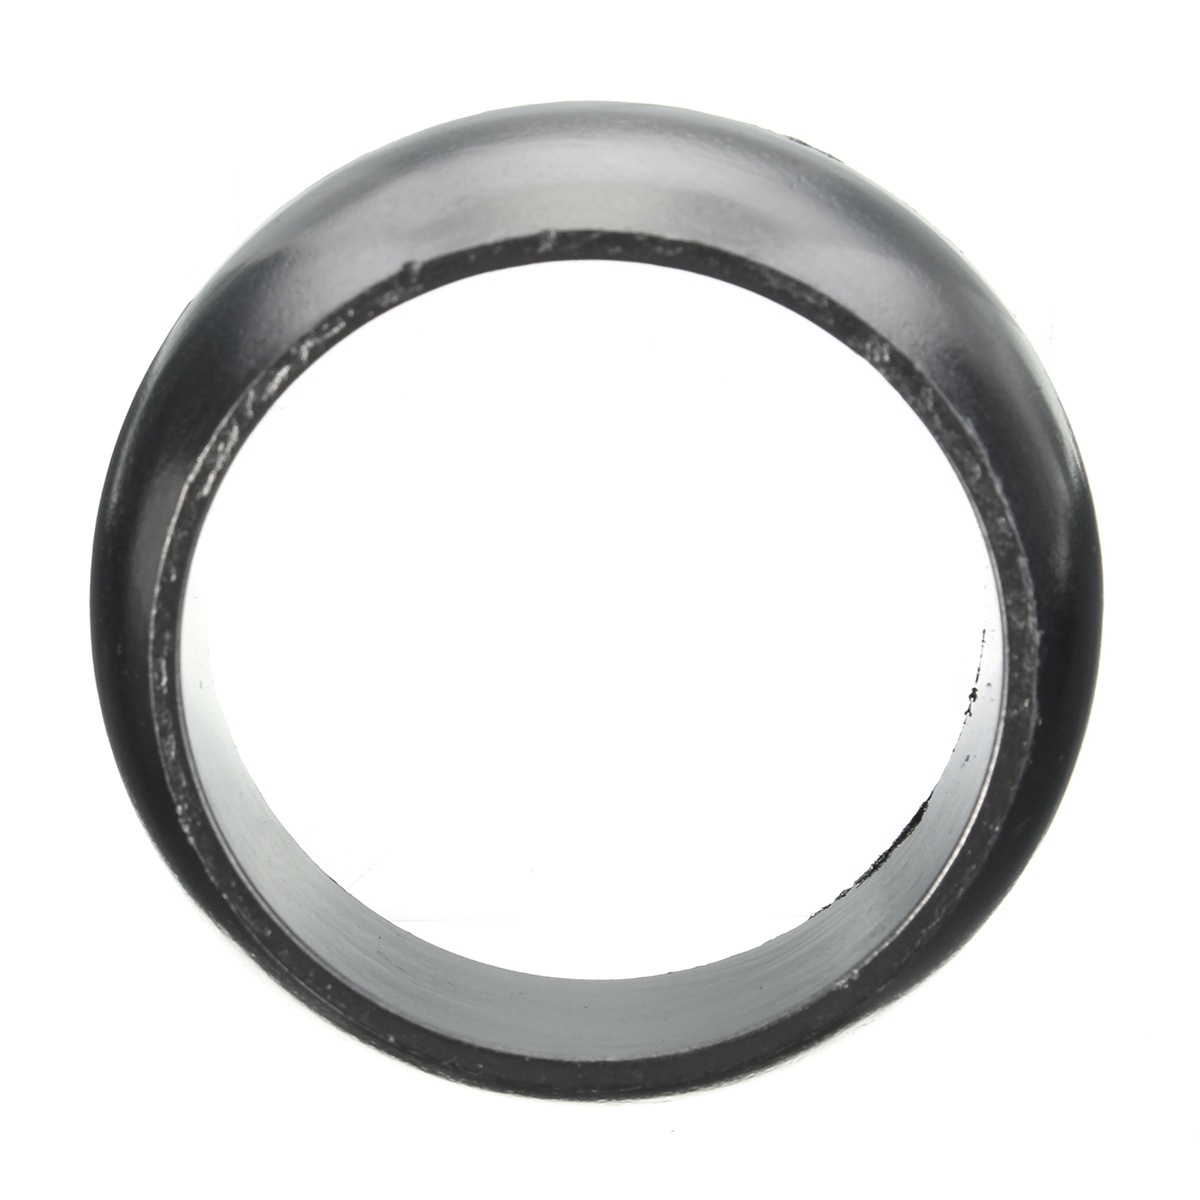 1pcs Gasket Ring For Polaris Sportman Exhaust Gasket Seal Universal For Motorcycle ATV Stainless Steel Exhaust Sealing Gaskets